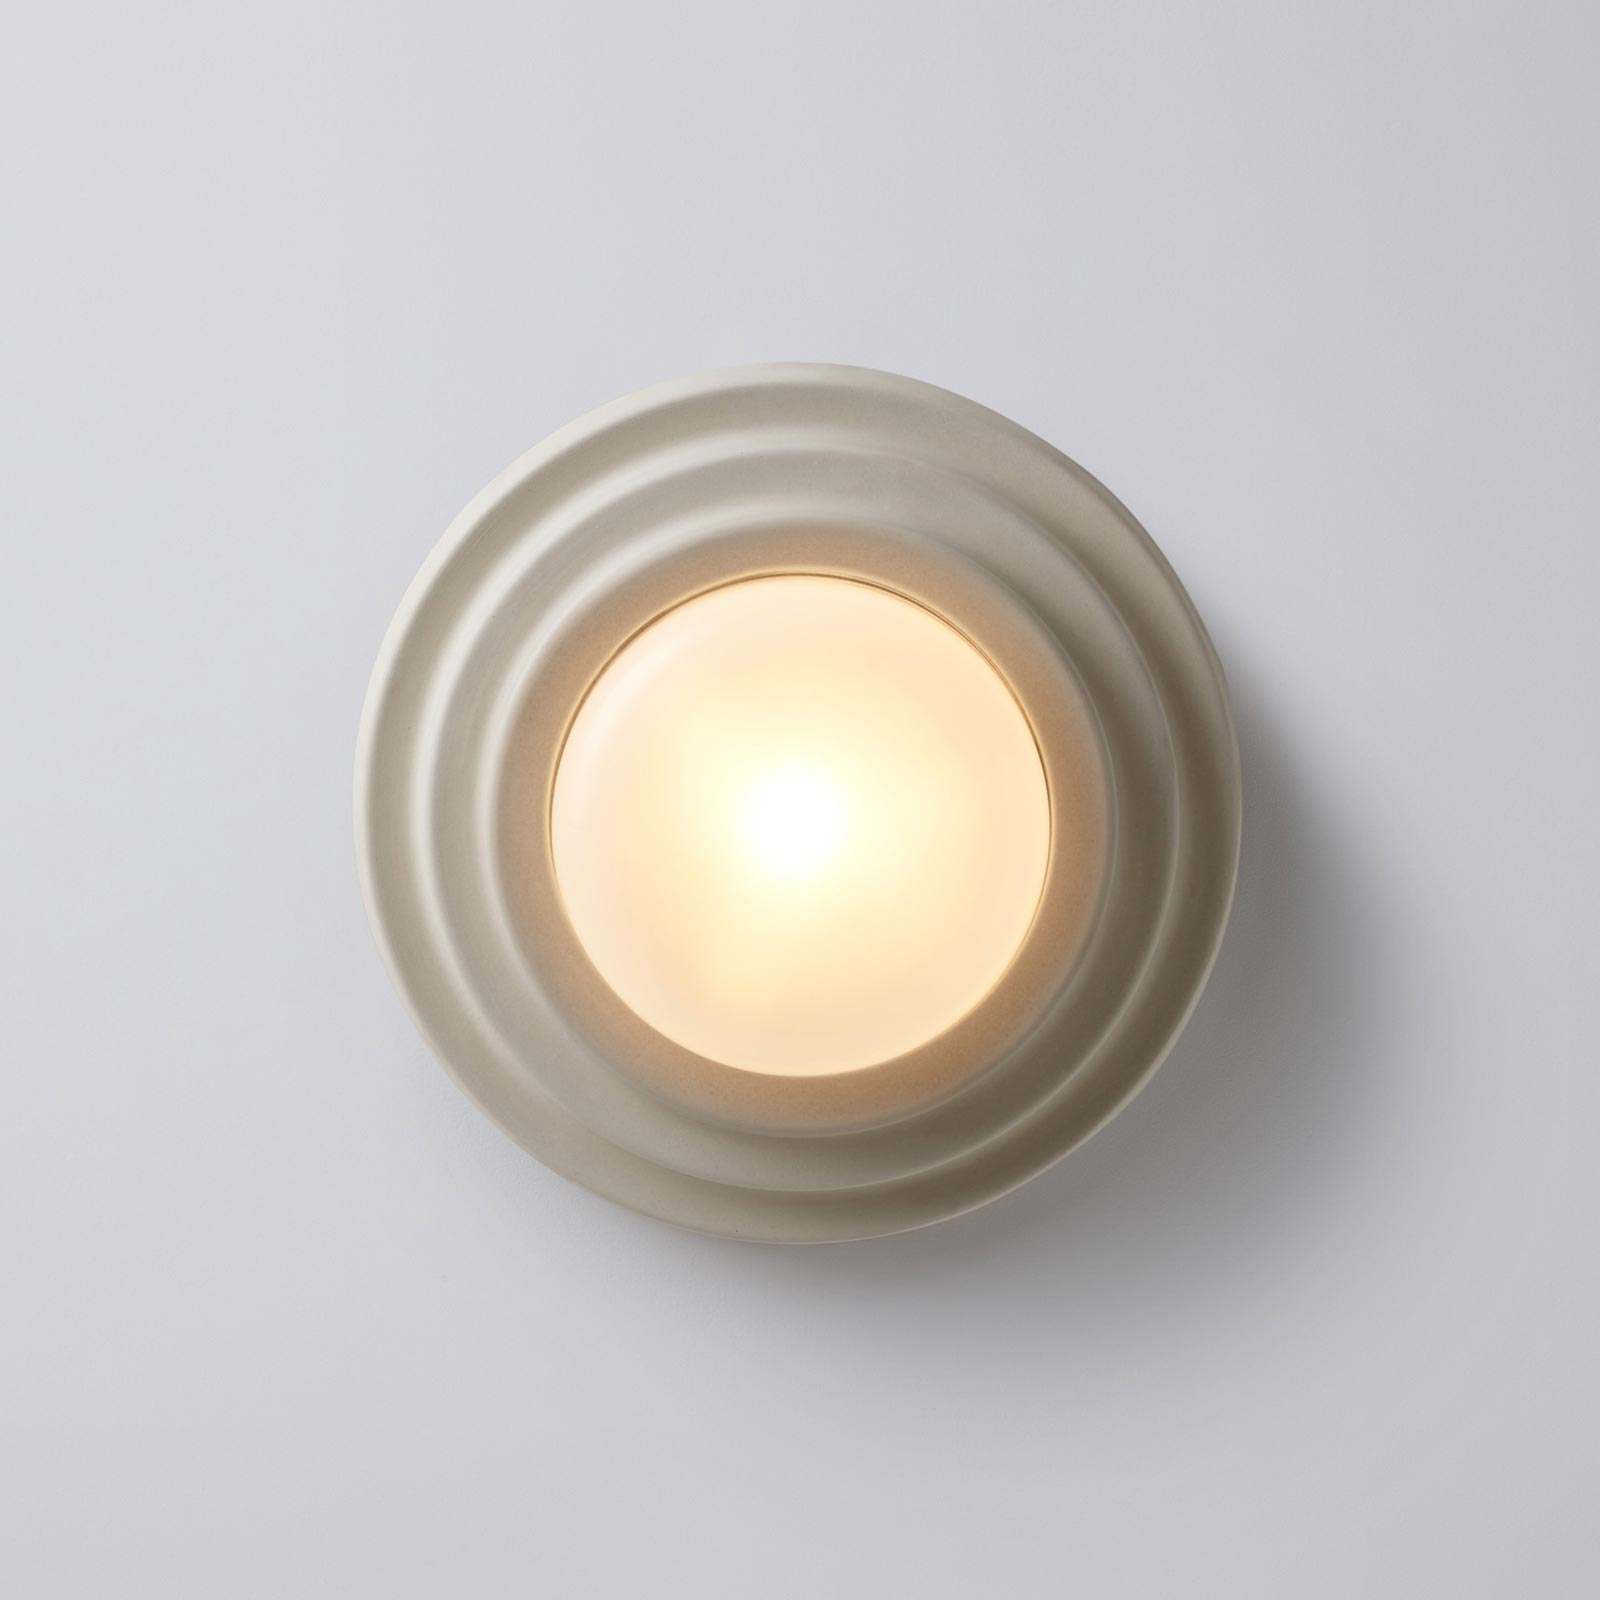 Honey Wall Sconce By Coco Flip Hero 2